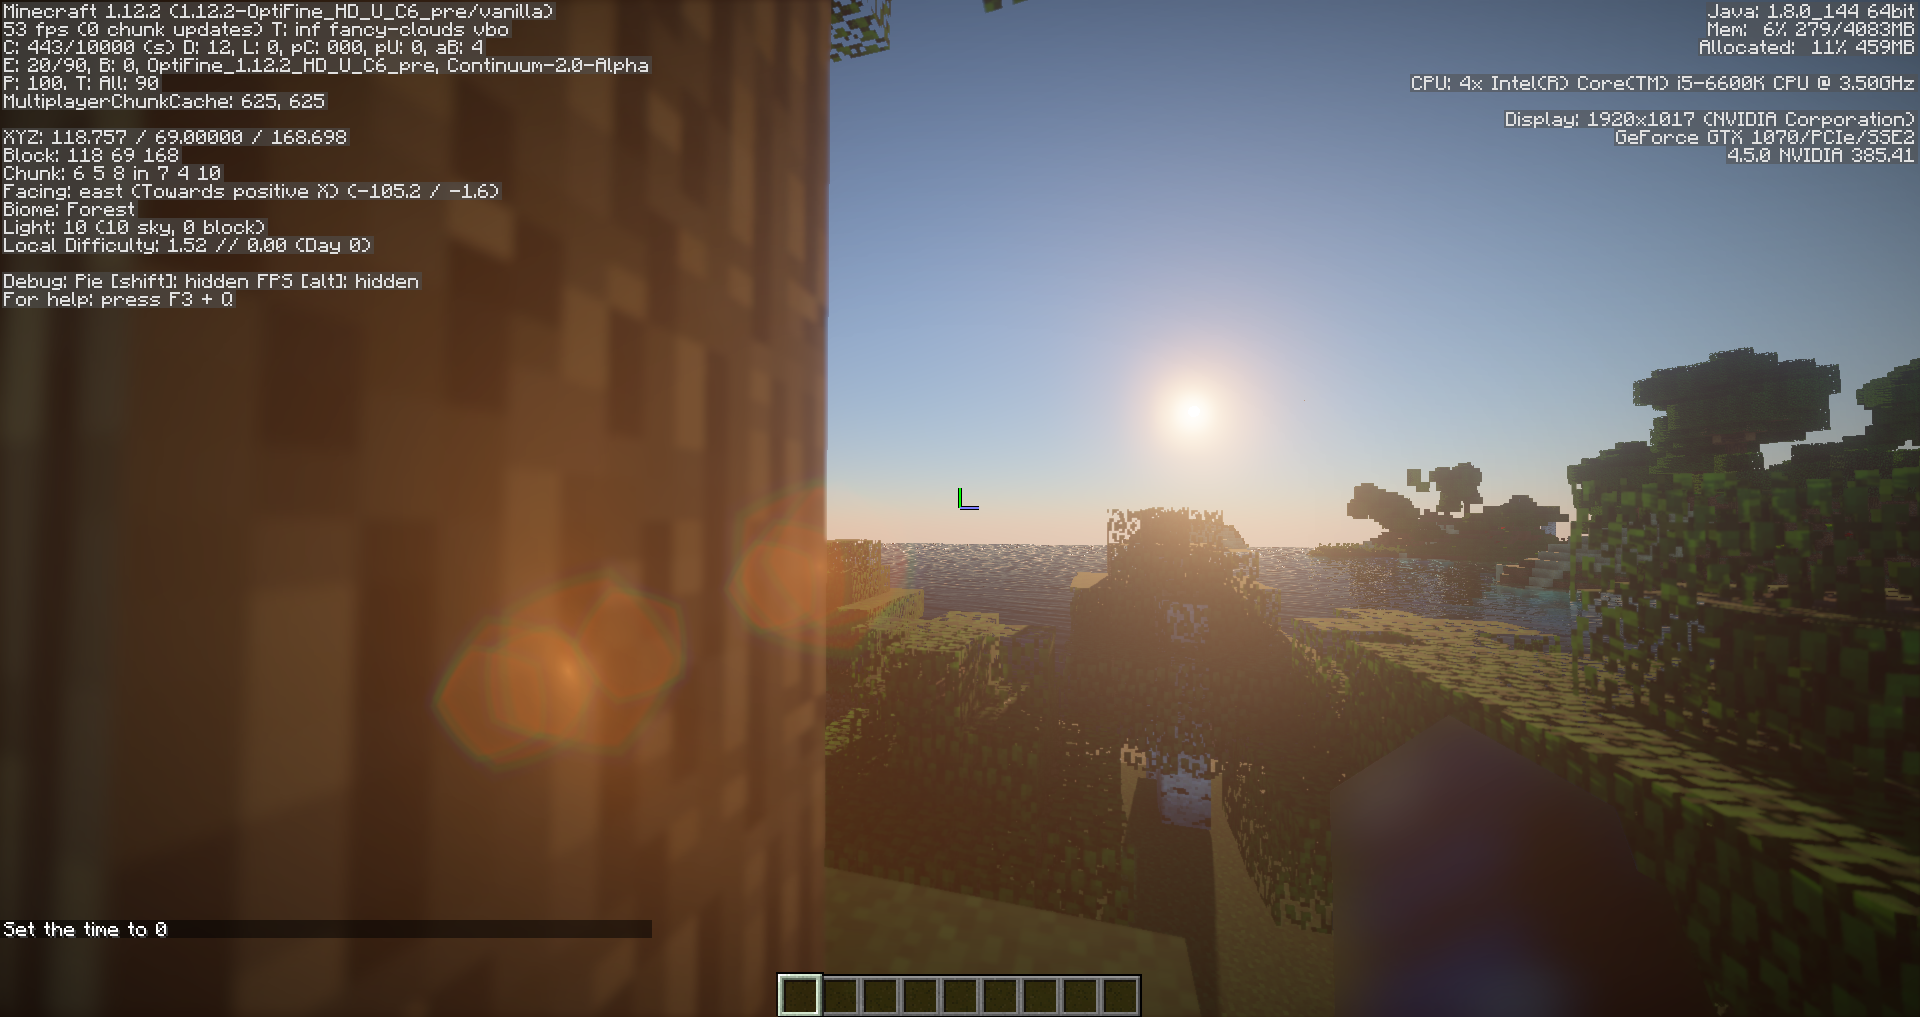 This is the FPS at which volumetric clouds are disabled